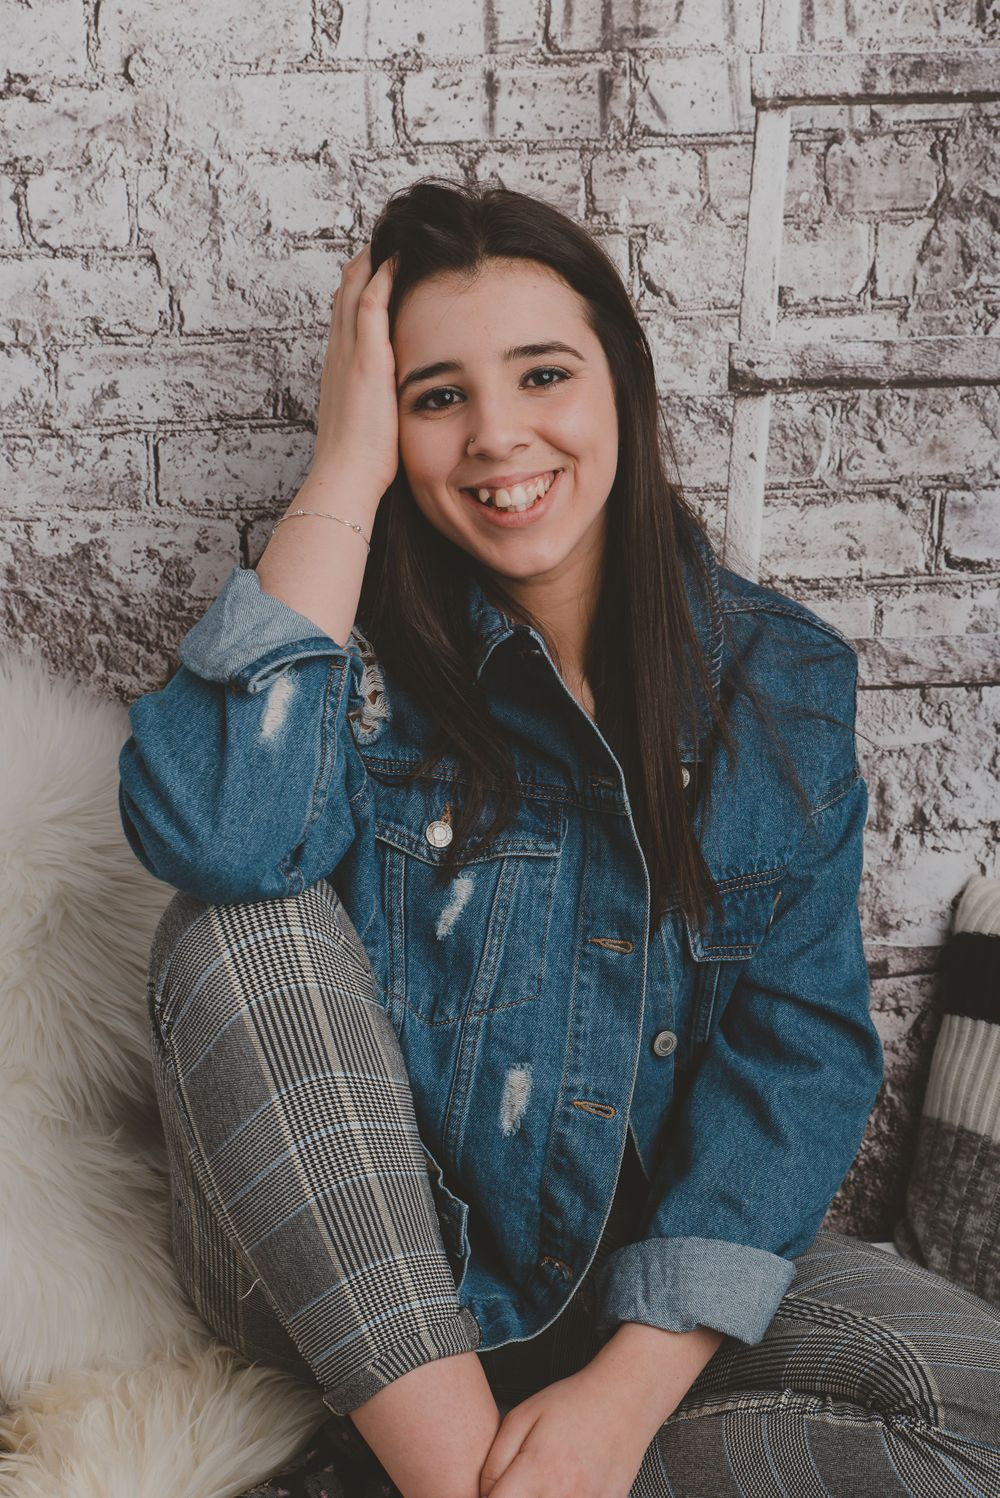 portrait studio adolescente